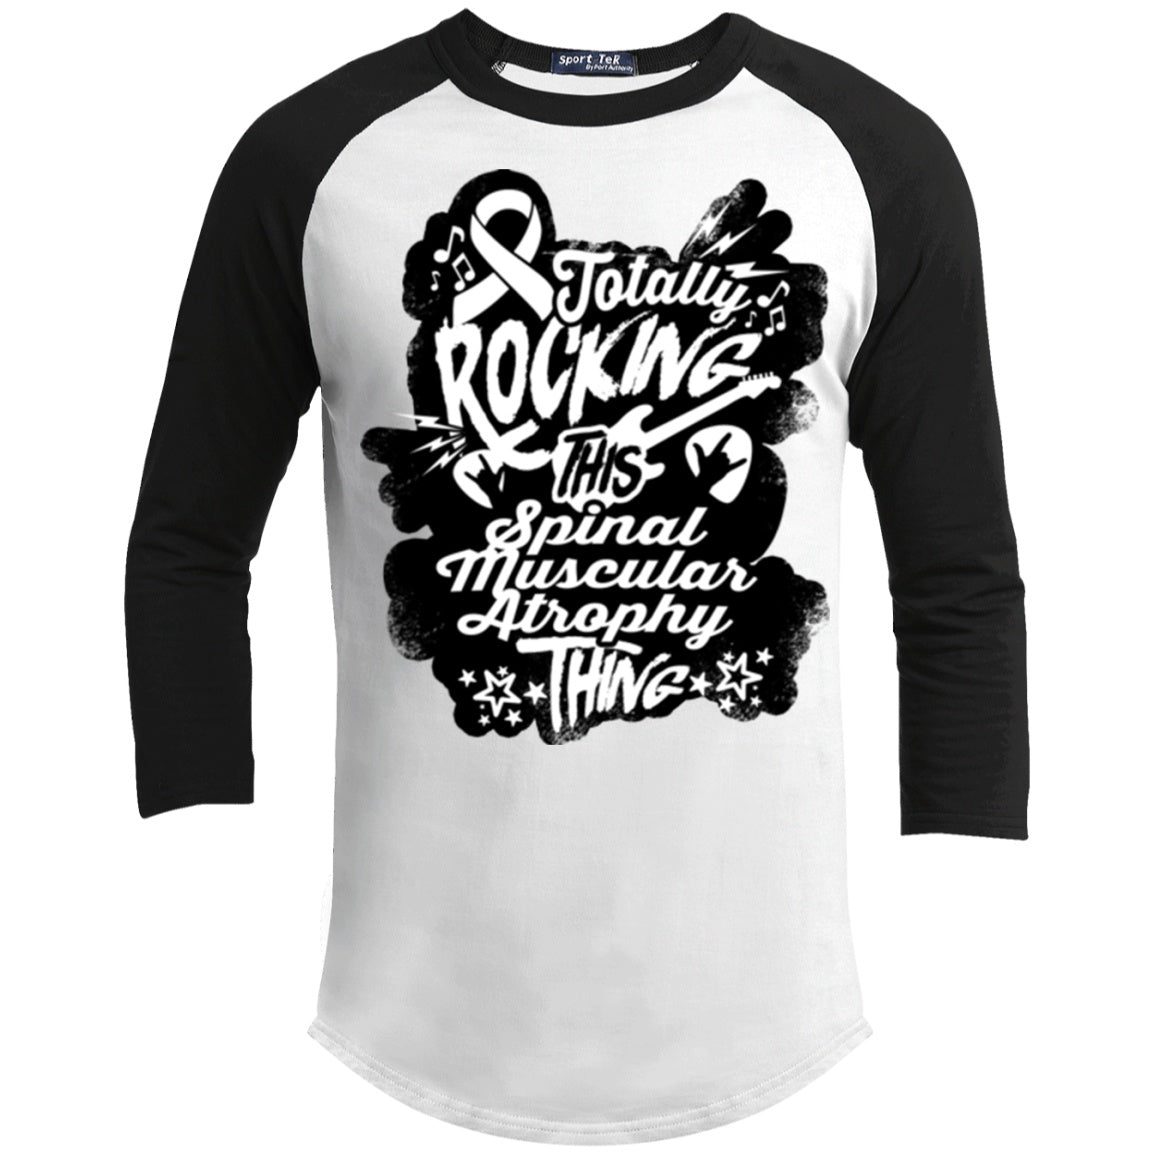 T-Shirts - Rocking Spinal Muscular Atrophy Baseball Shirt